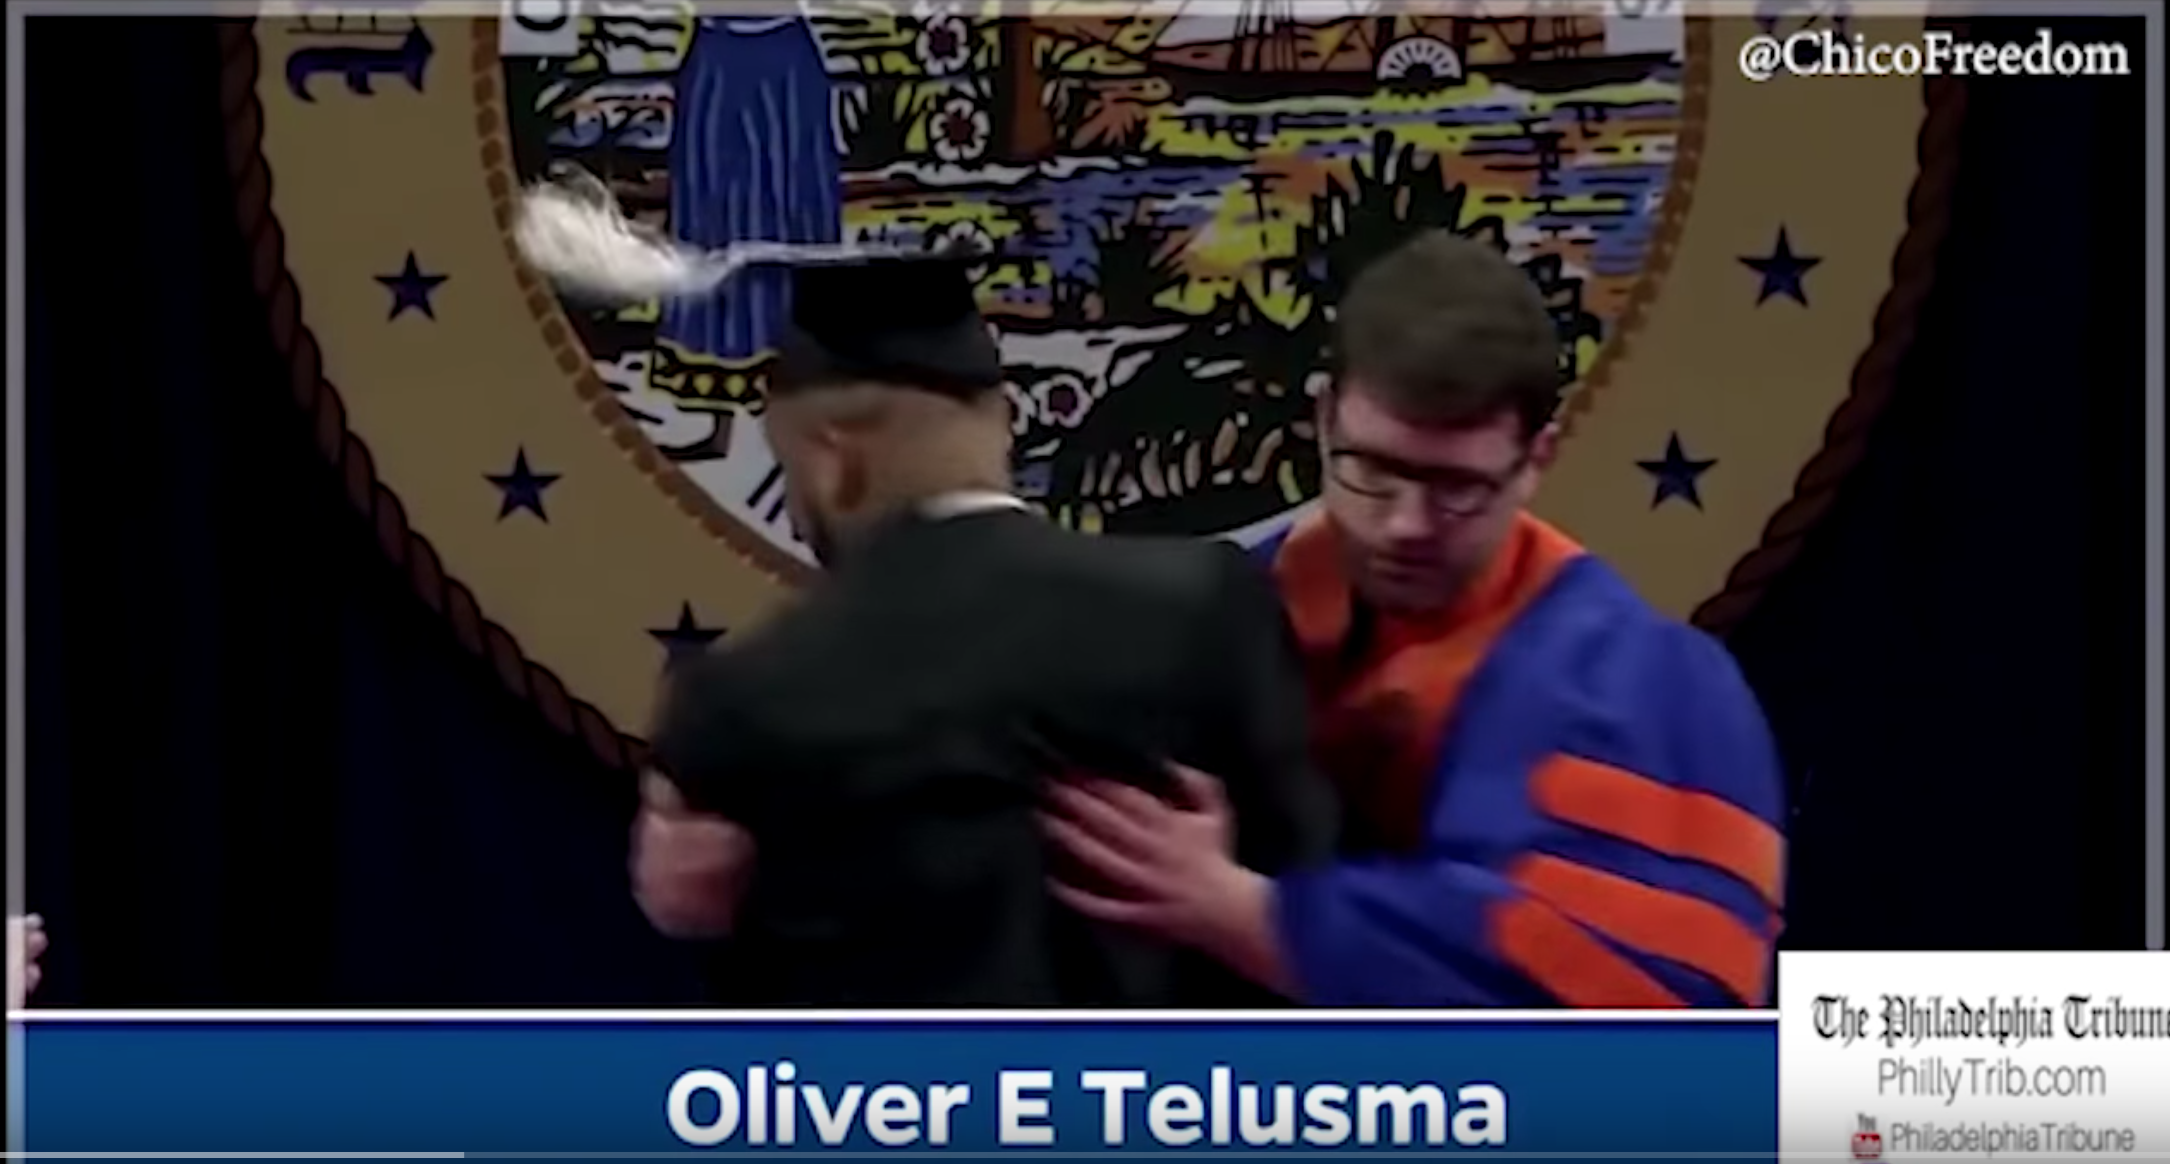 05/07/18 : Univ. of Florida Black greeks manhandled for strolling at graduation